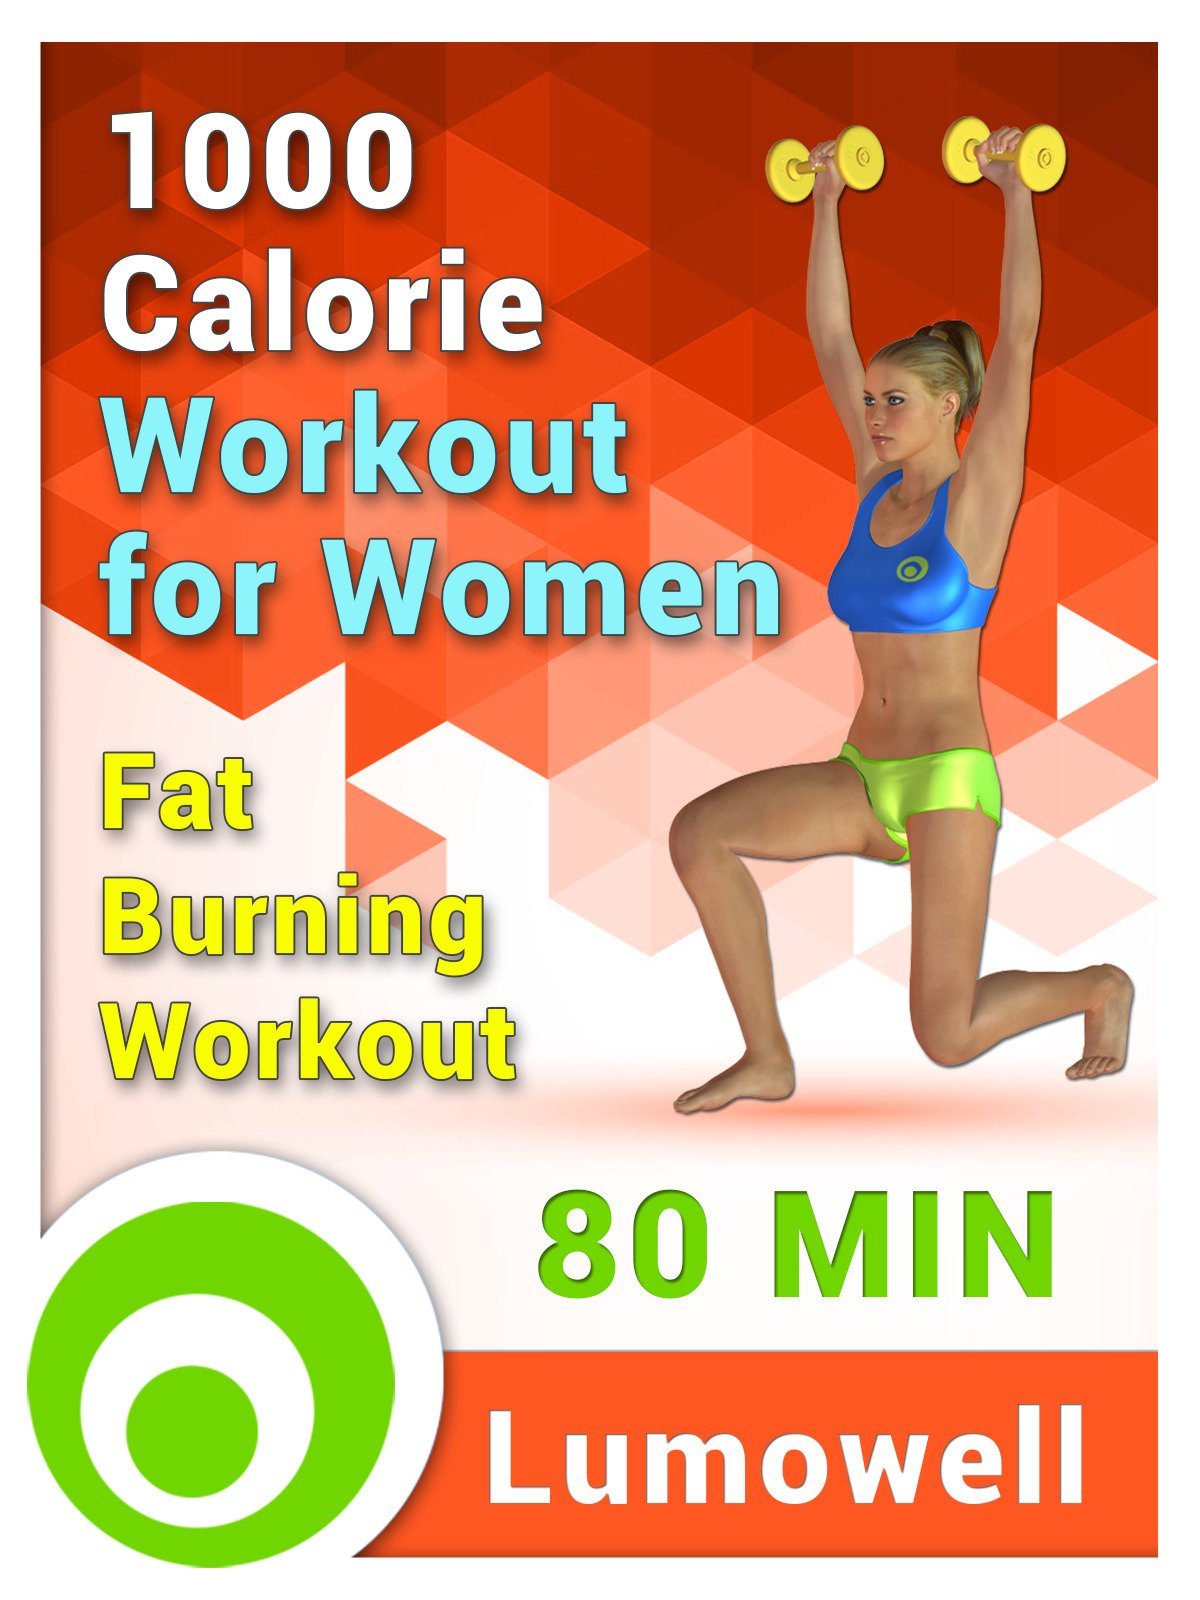 1000 Calorie Workout for Women